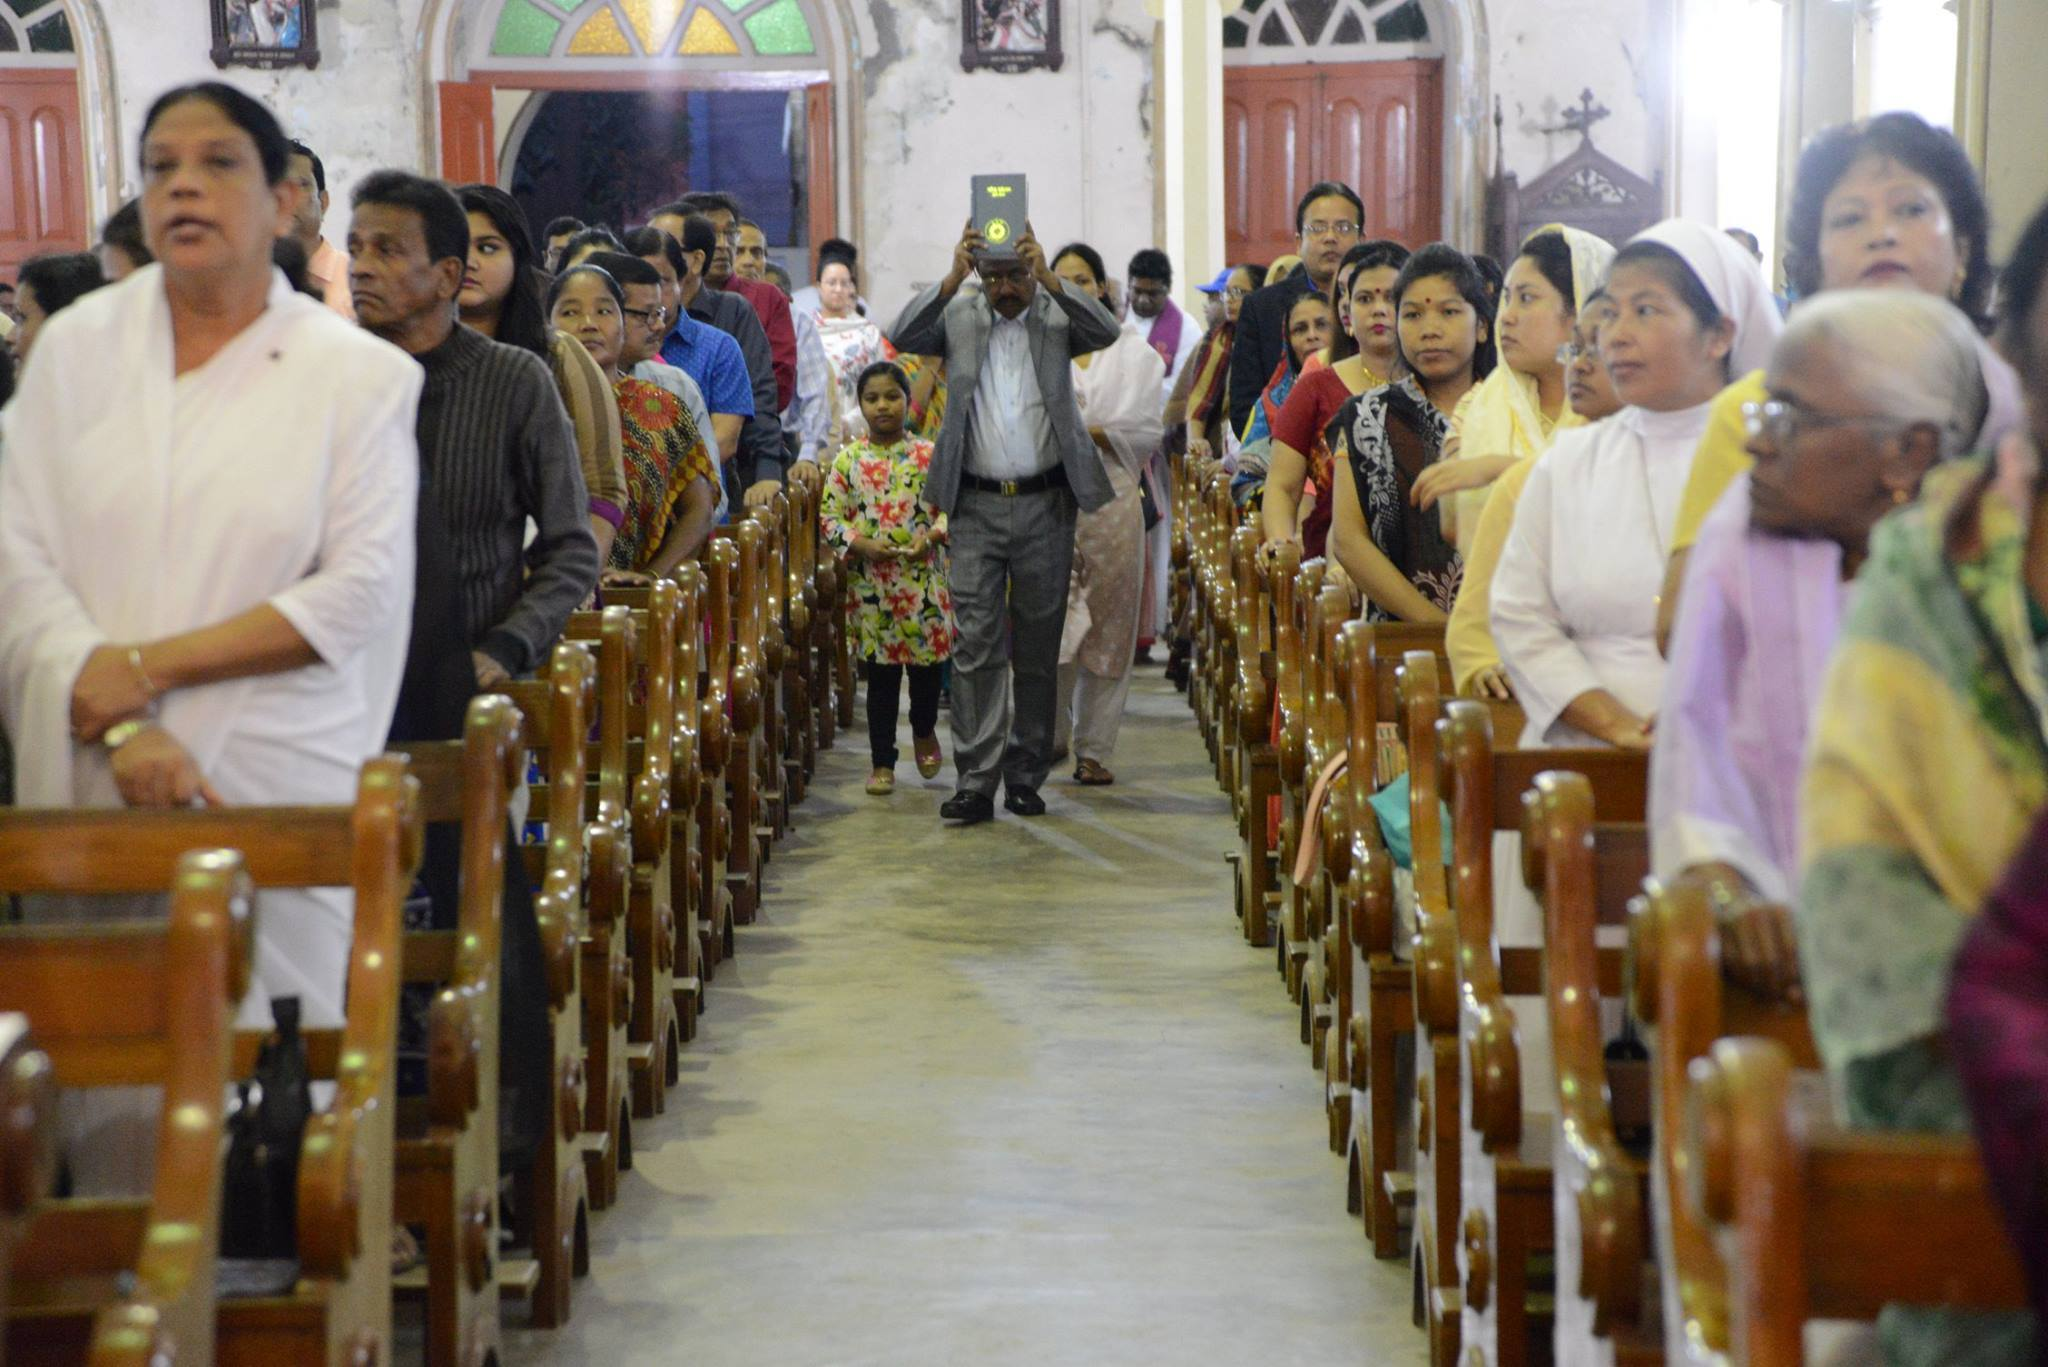 Bible procession before the mass to open the 5th centenary of propagation of faith in Chittagong